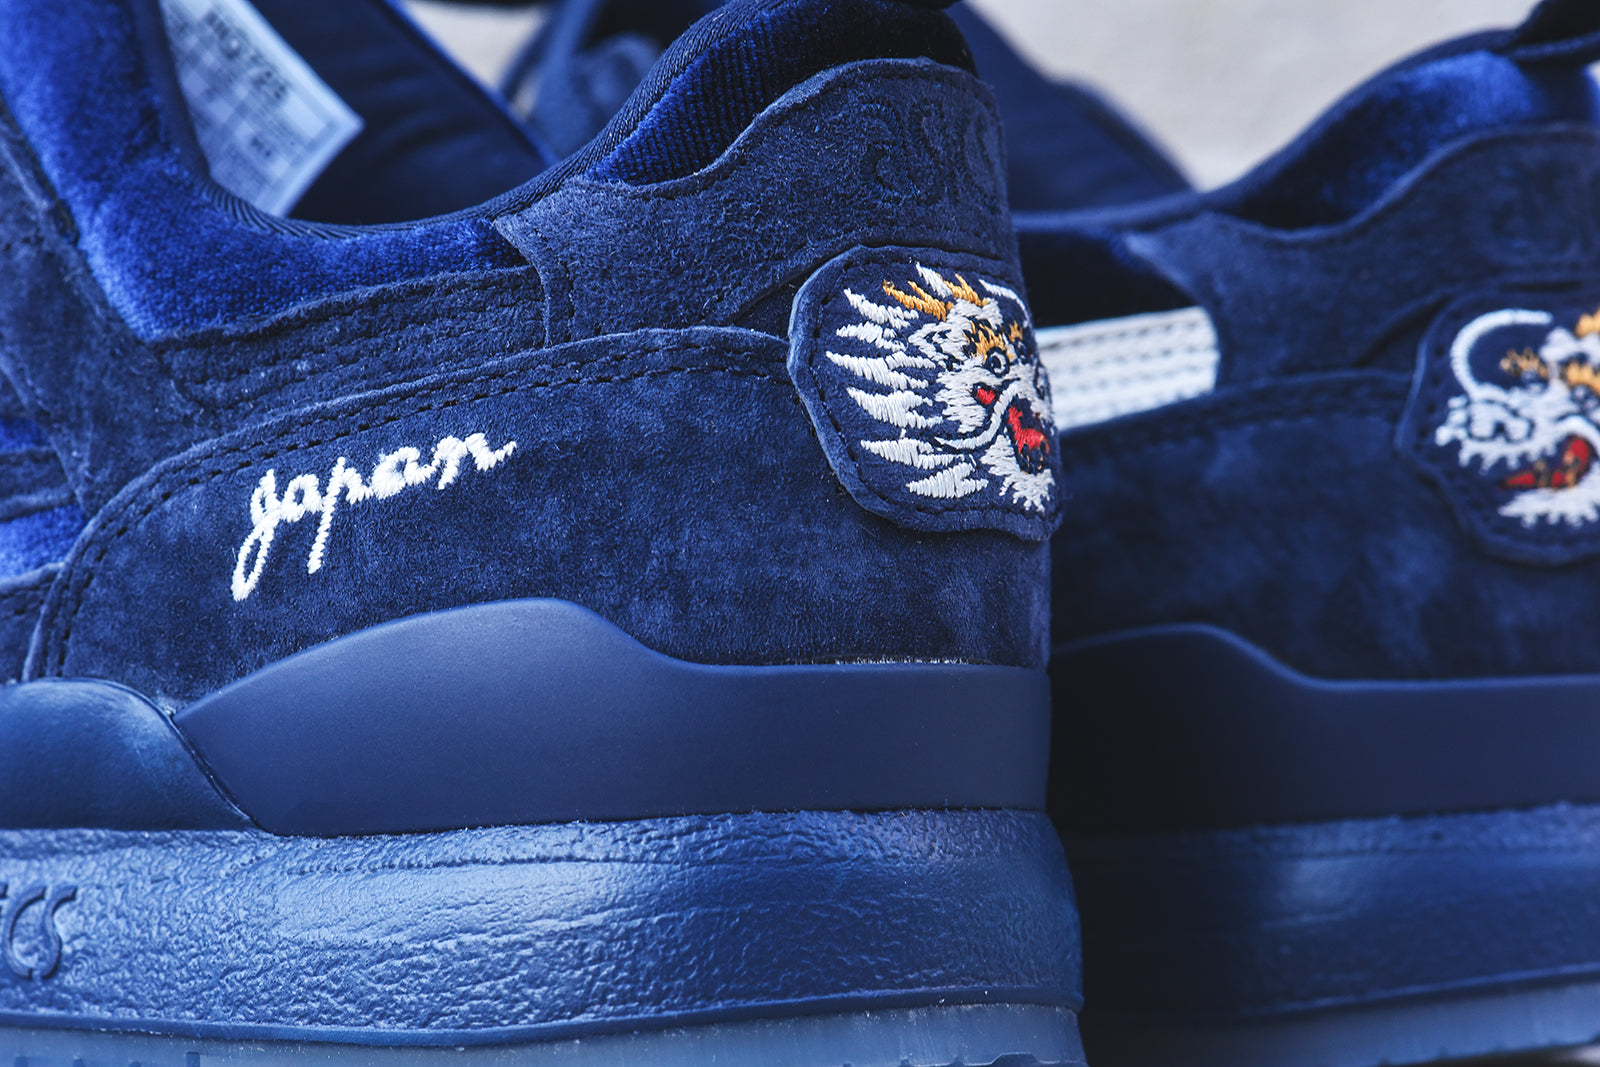 Asics x Mita x Beams Gel Lyte III - Navy